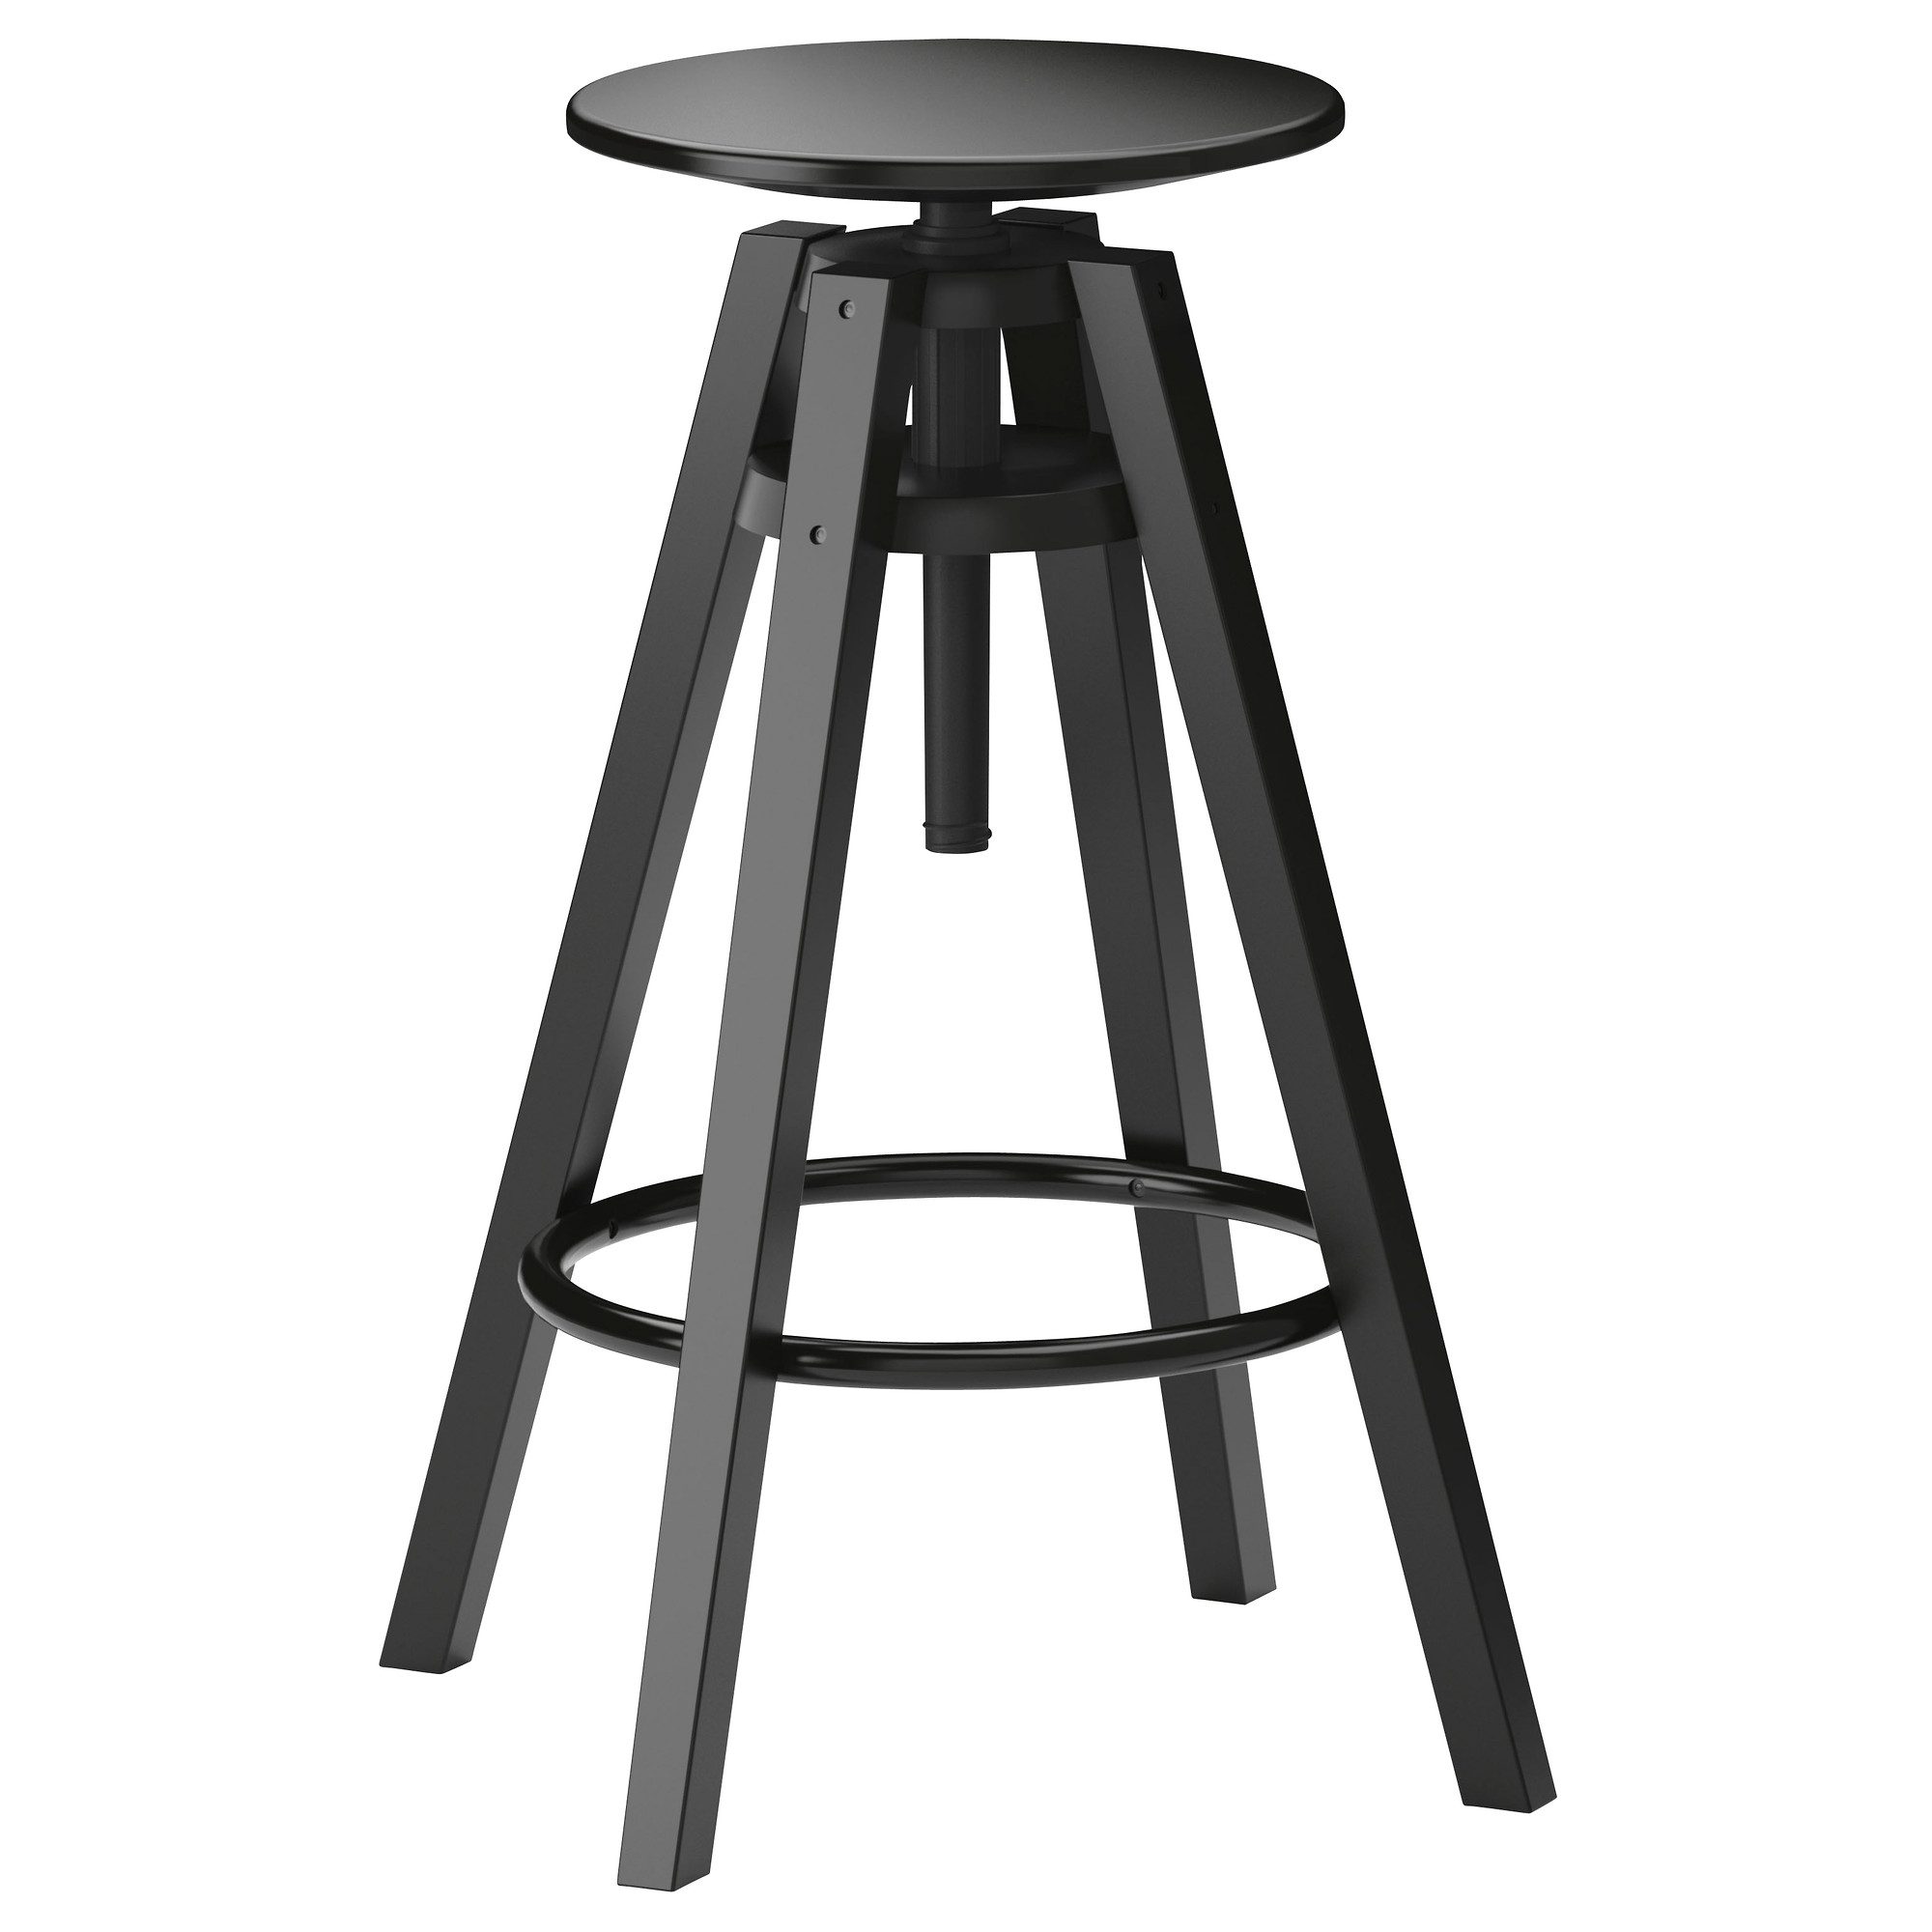 tabouret de bar ikea mobilier design d coration d 39 int rieur. Black Bedroom Furniture Sets. Home Design Ideas